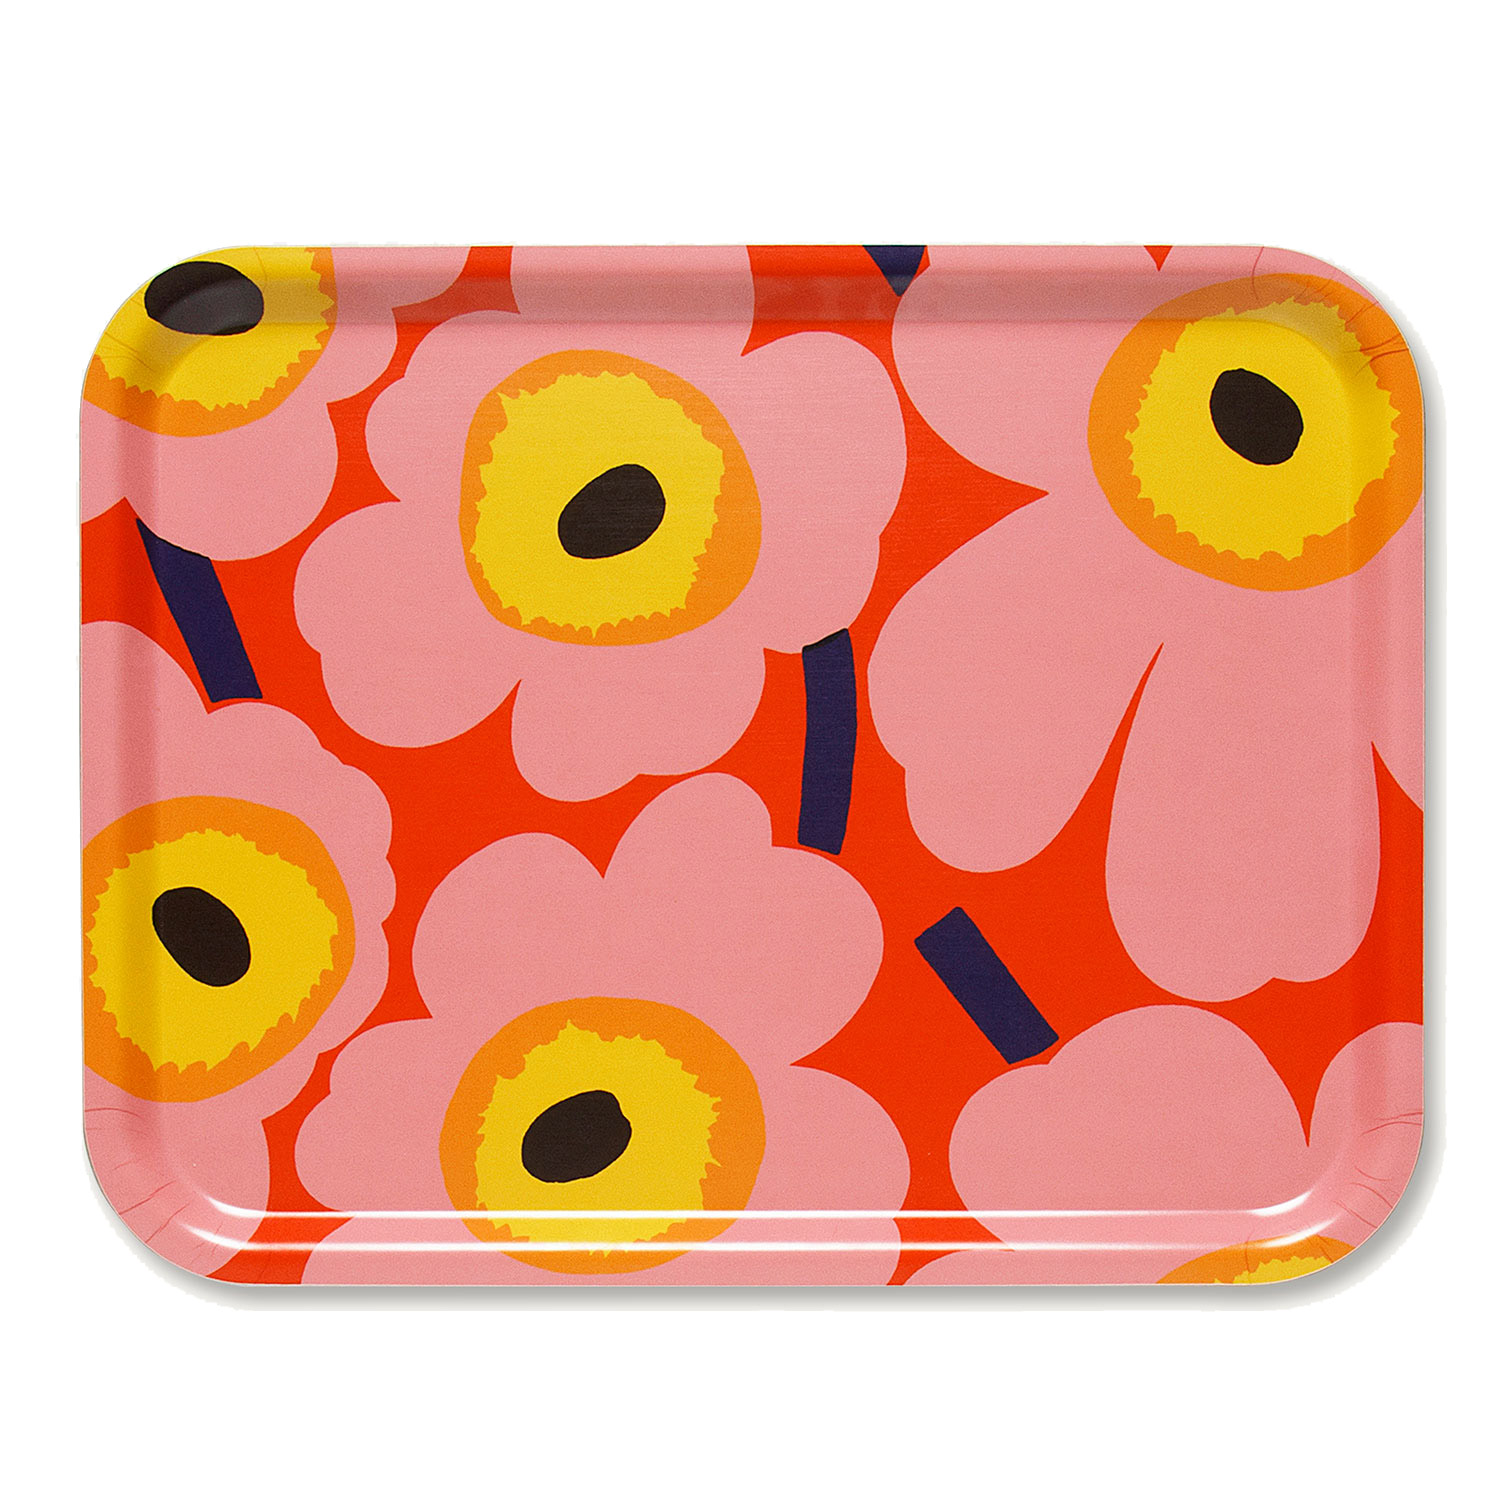 Pieni Unikko bricka 43x33, orange/rosa